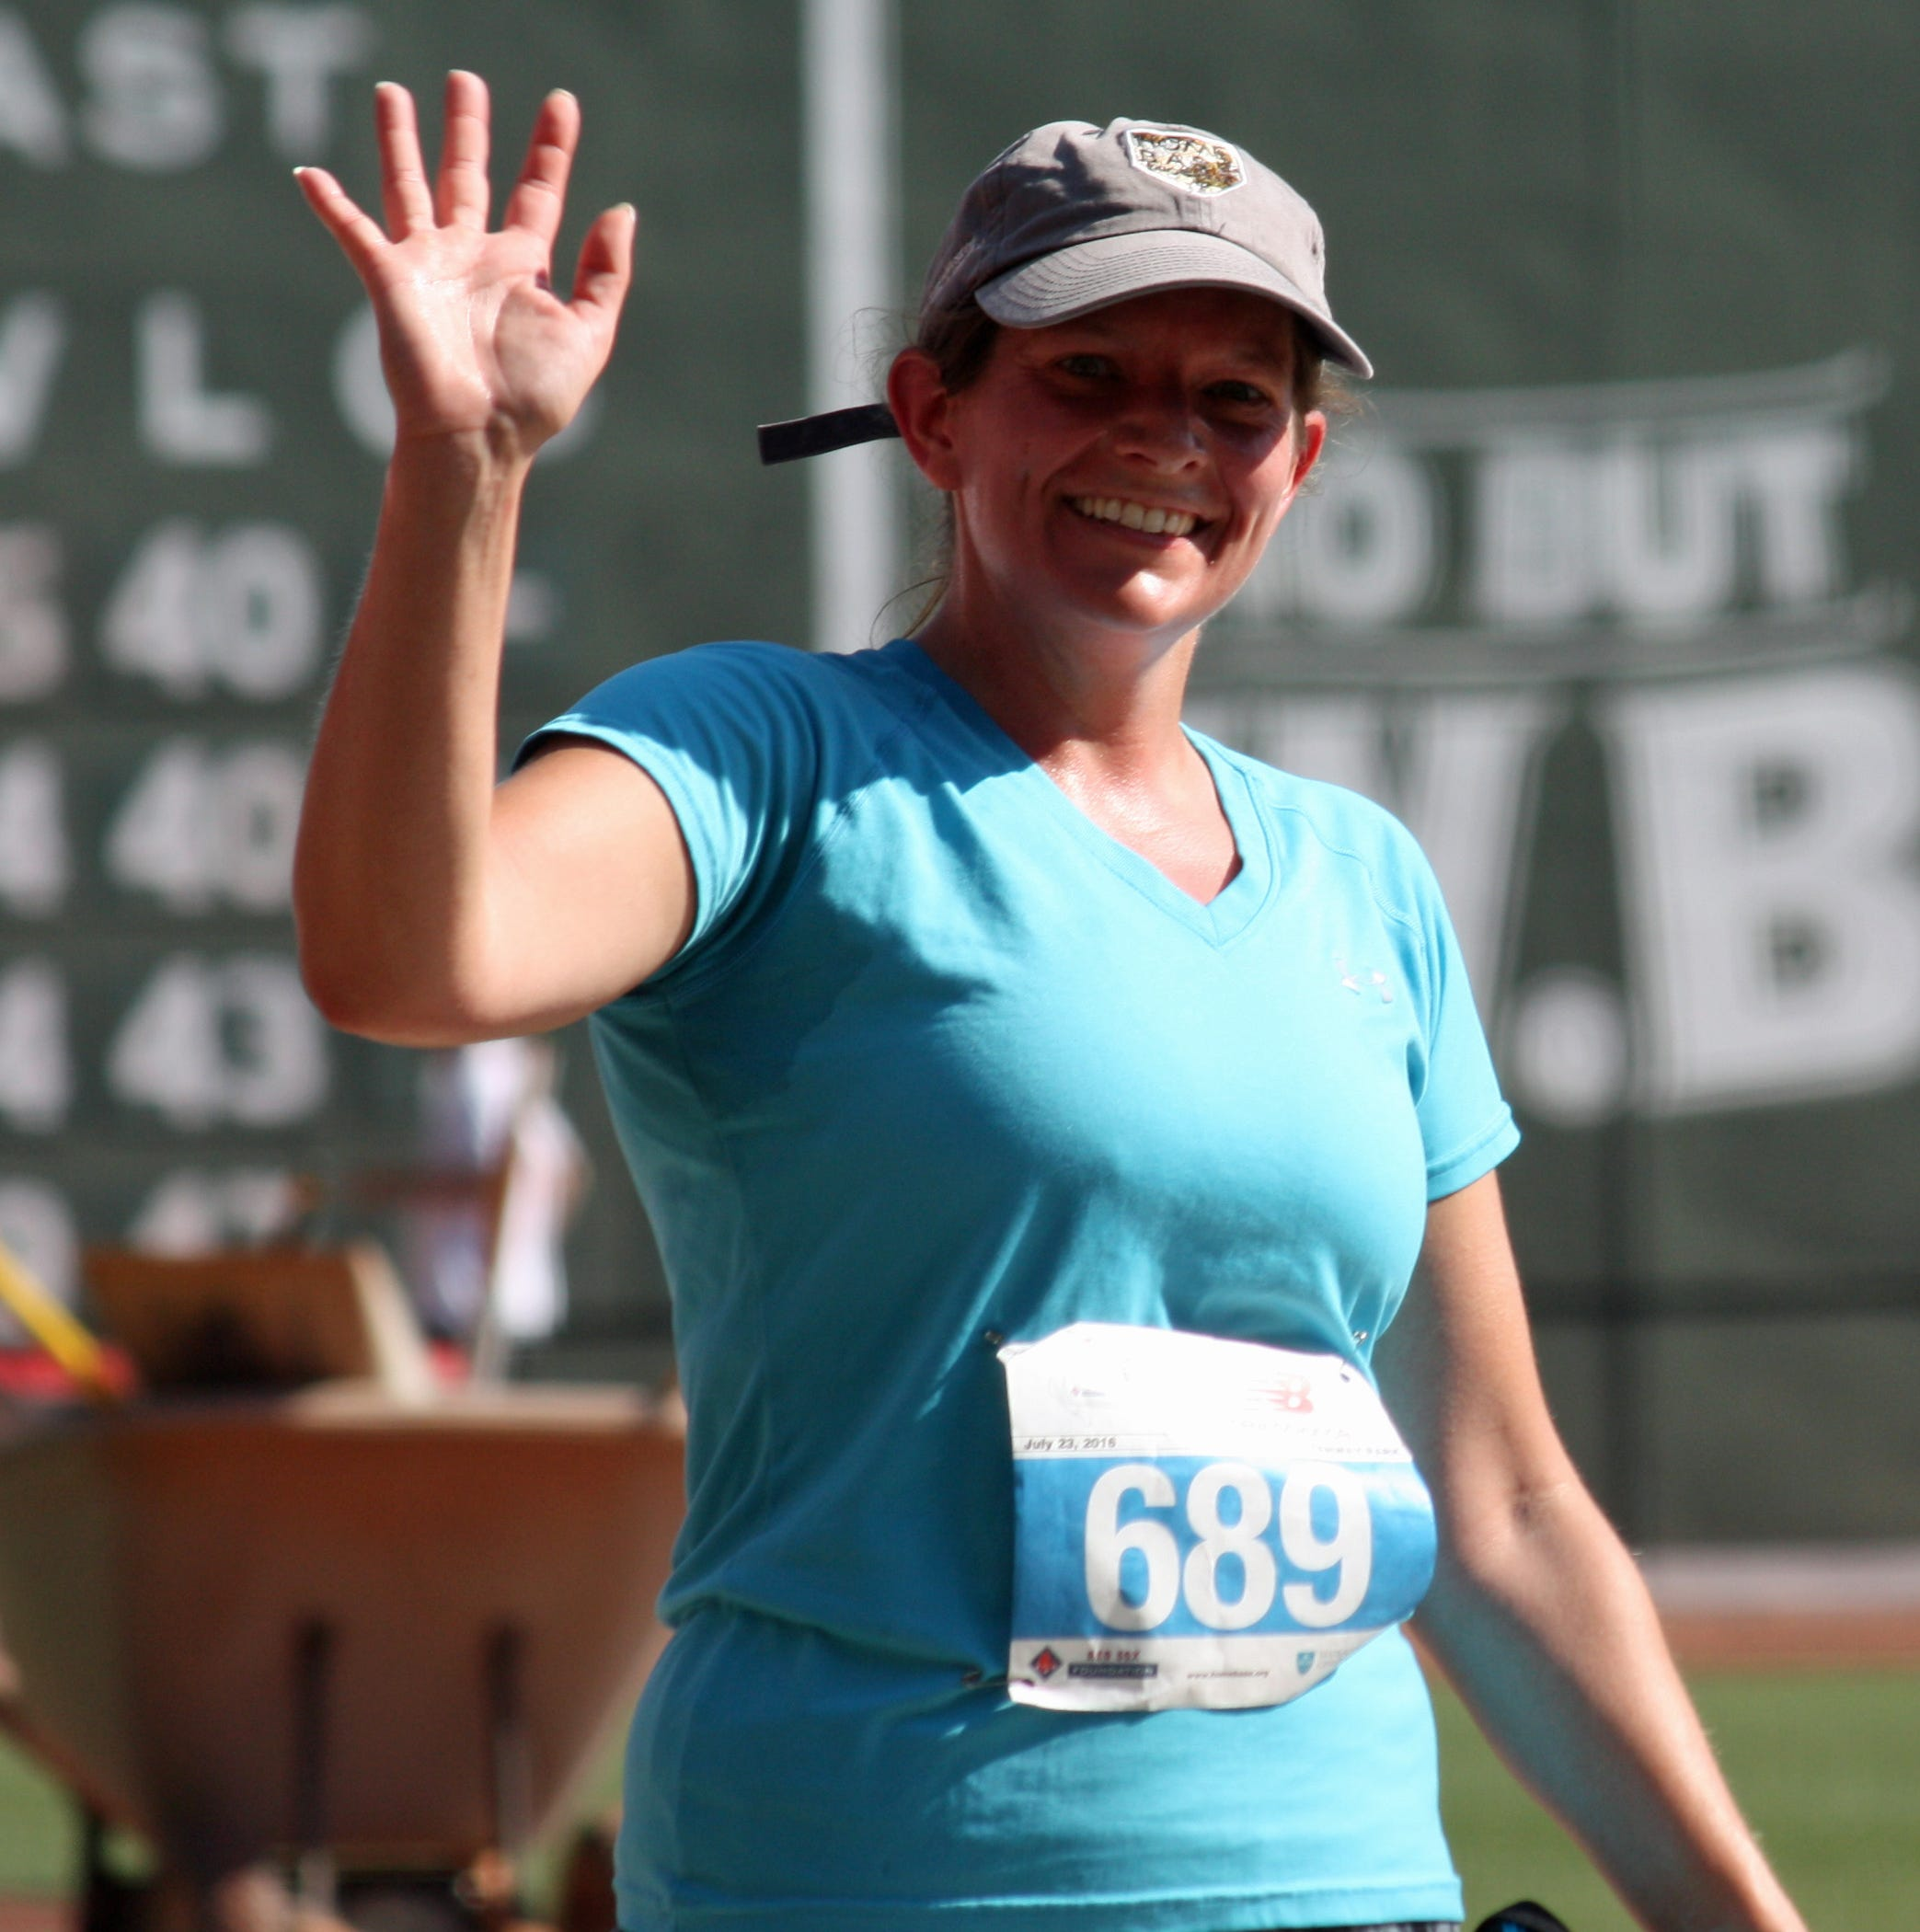 NJ runners say Boston Marathon fundraising is worth going the extra mile